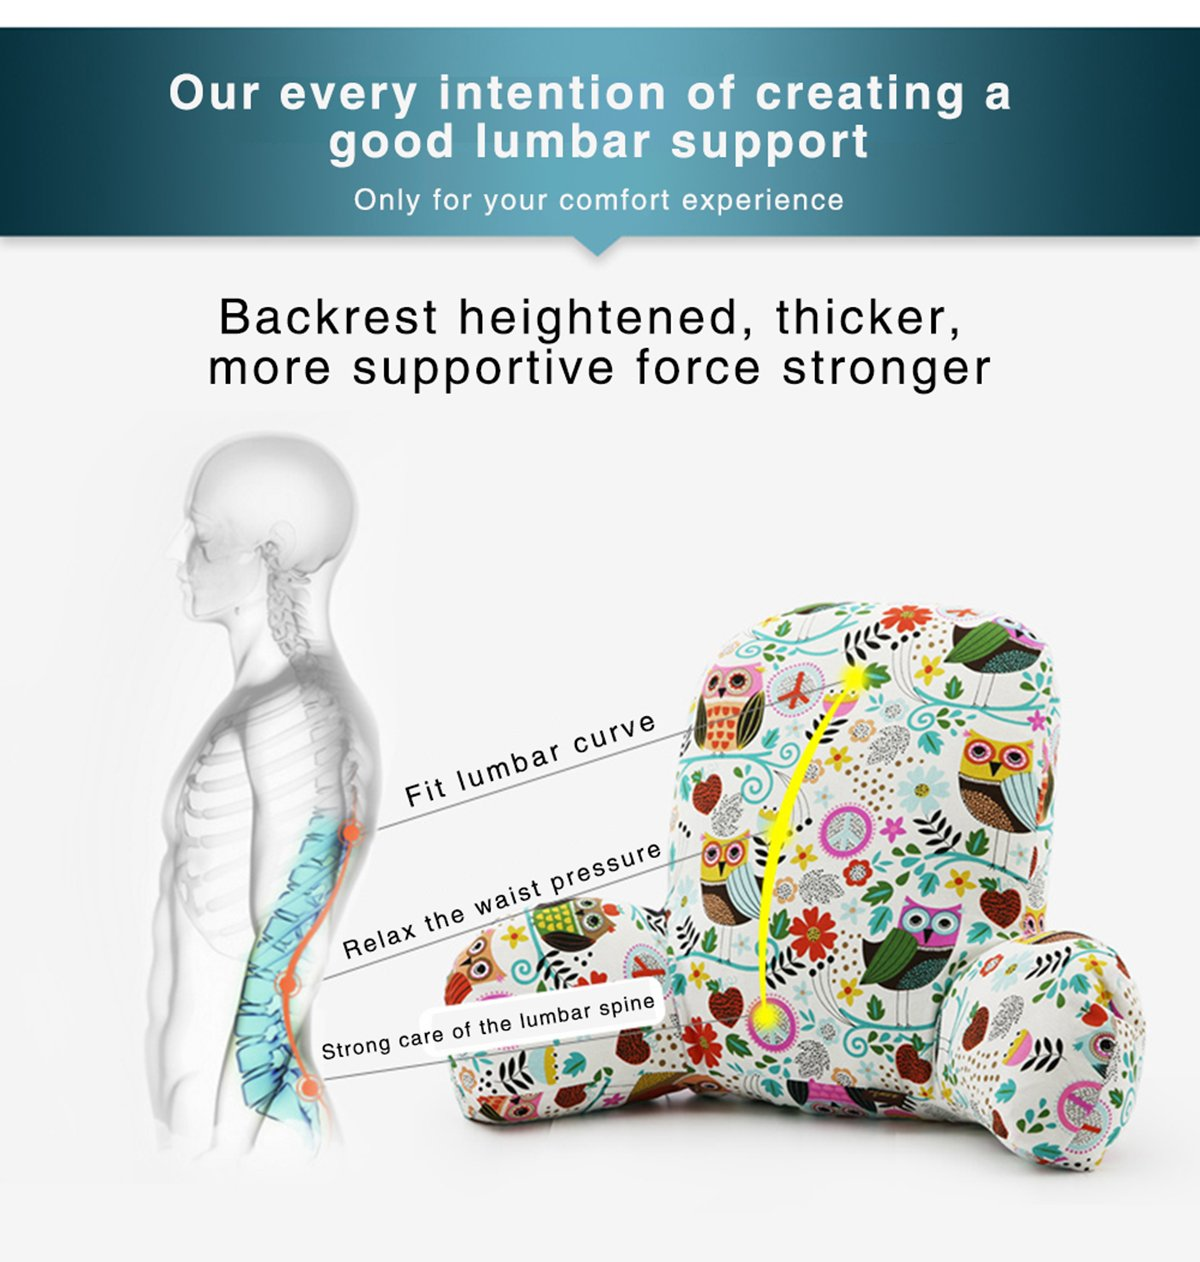 Memory Shredded Foam Pad Pregnant Women -Lumbar Soft Plush Couch Support Bed Rests with Arms Owl Song Wwang Bedrest Reading and TV Pillow with Arm Rests Lower Back